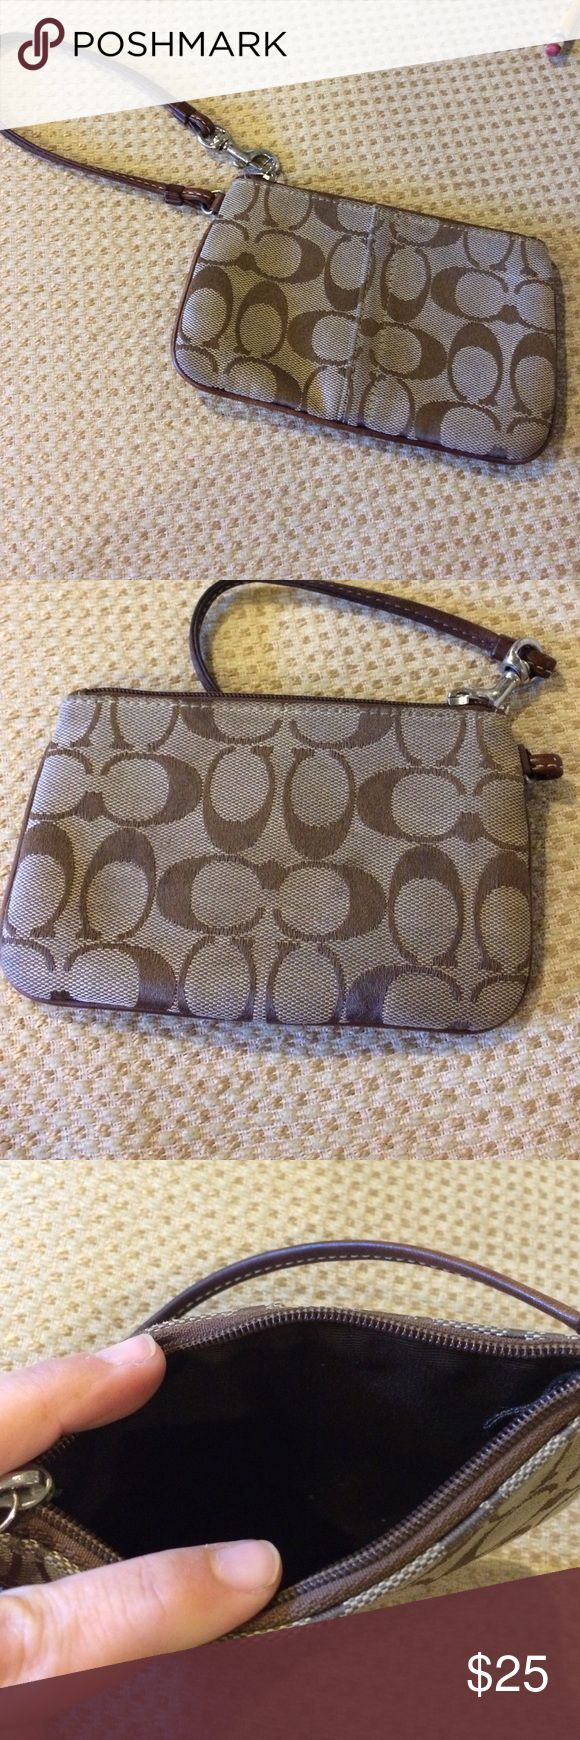 Coach Wristlet Coach Wristlet.  Signature Coach wristlet wallet in excellent condition. Coach Bags Clutches & Wristlets